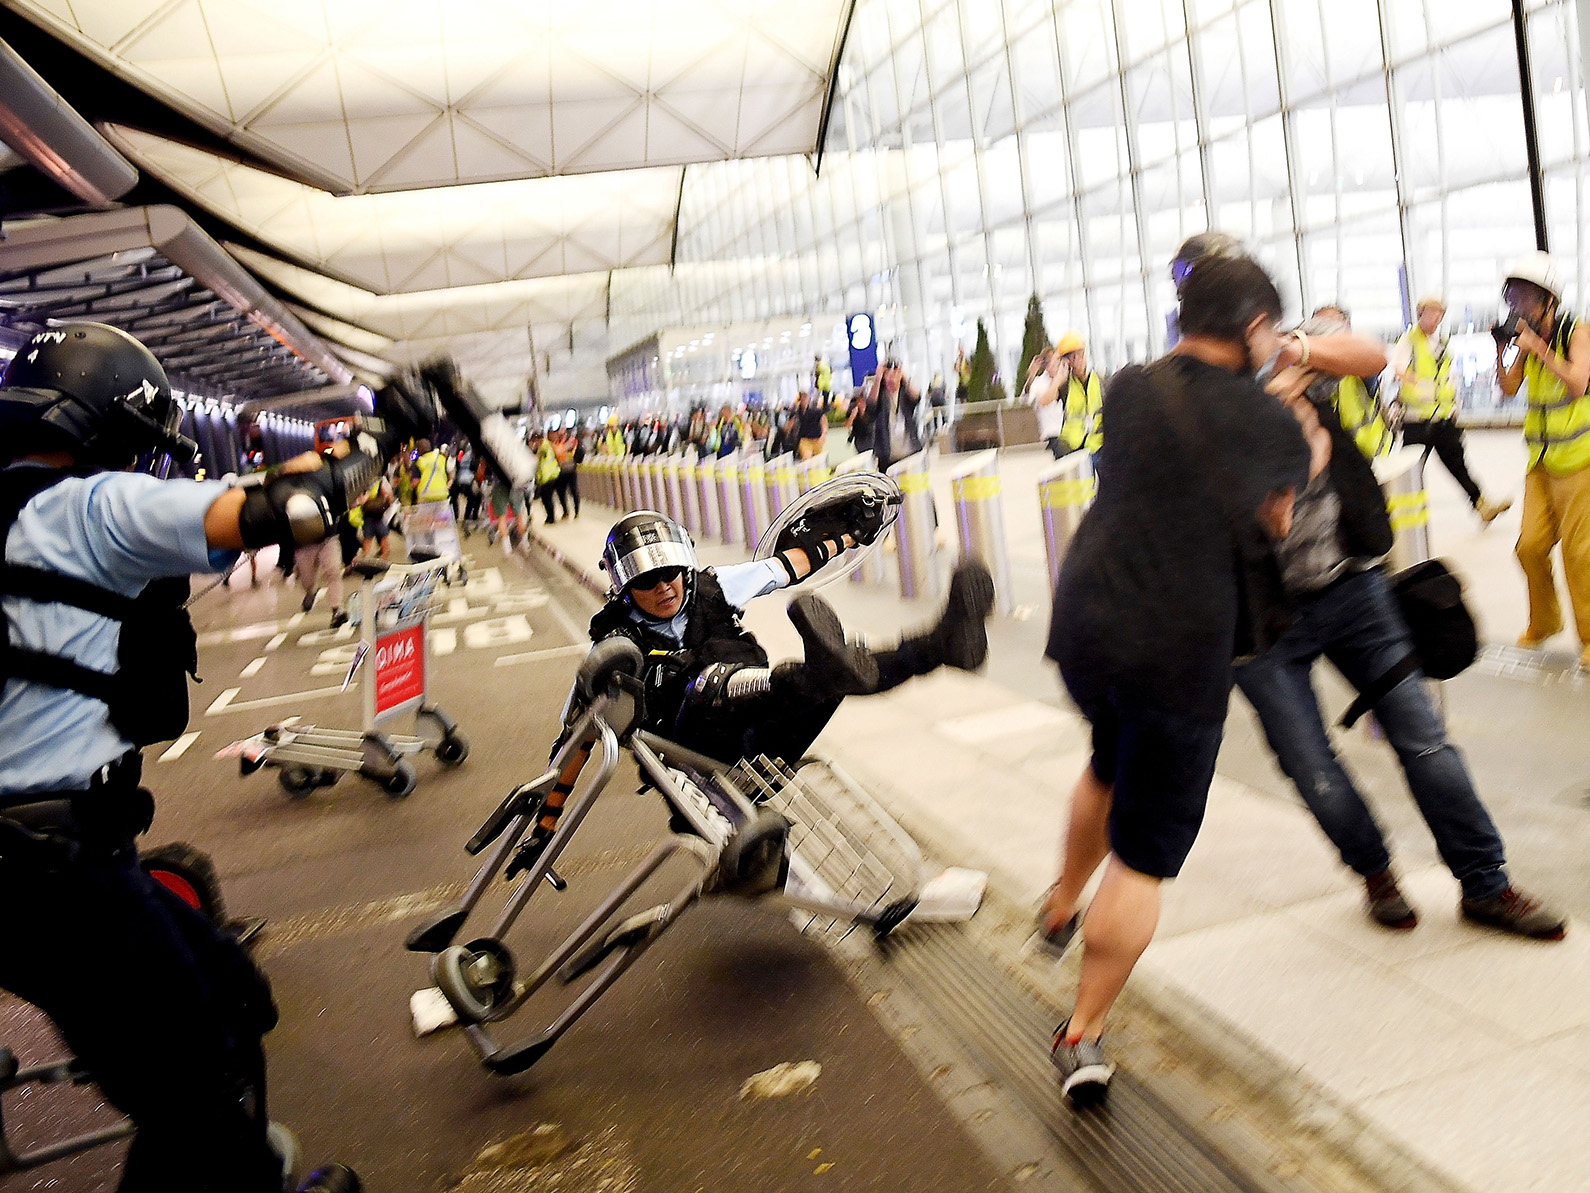 Police scuffle with demonstrators at Hong Kong's International Airport on Aug. 13.